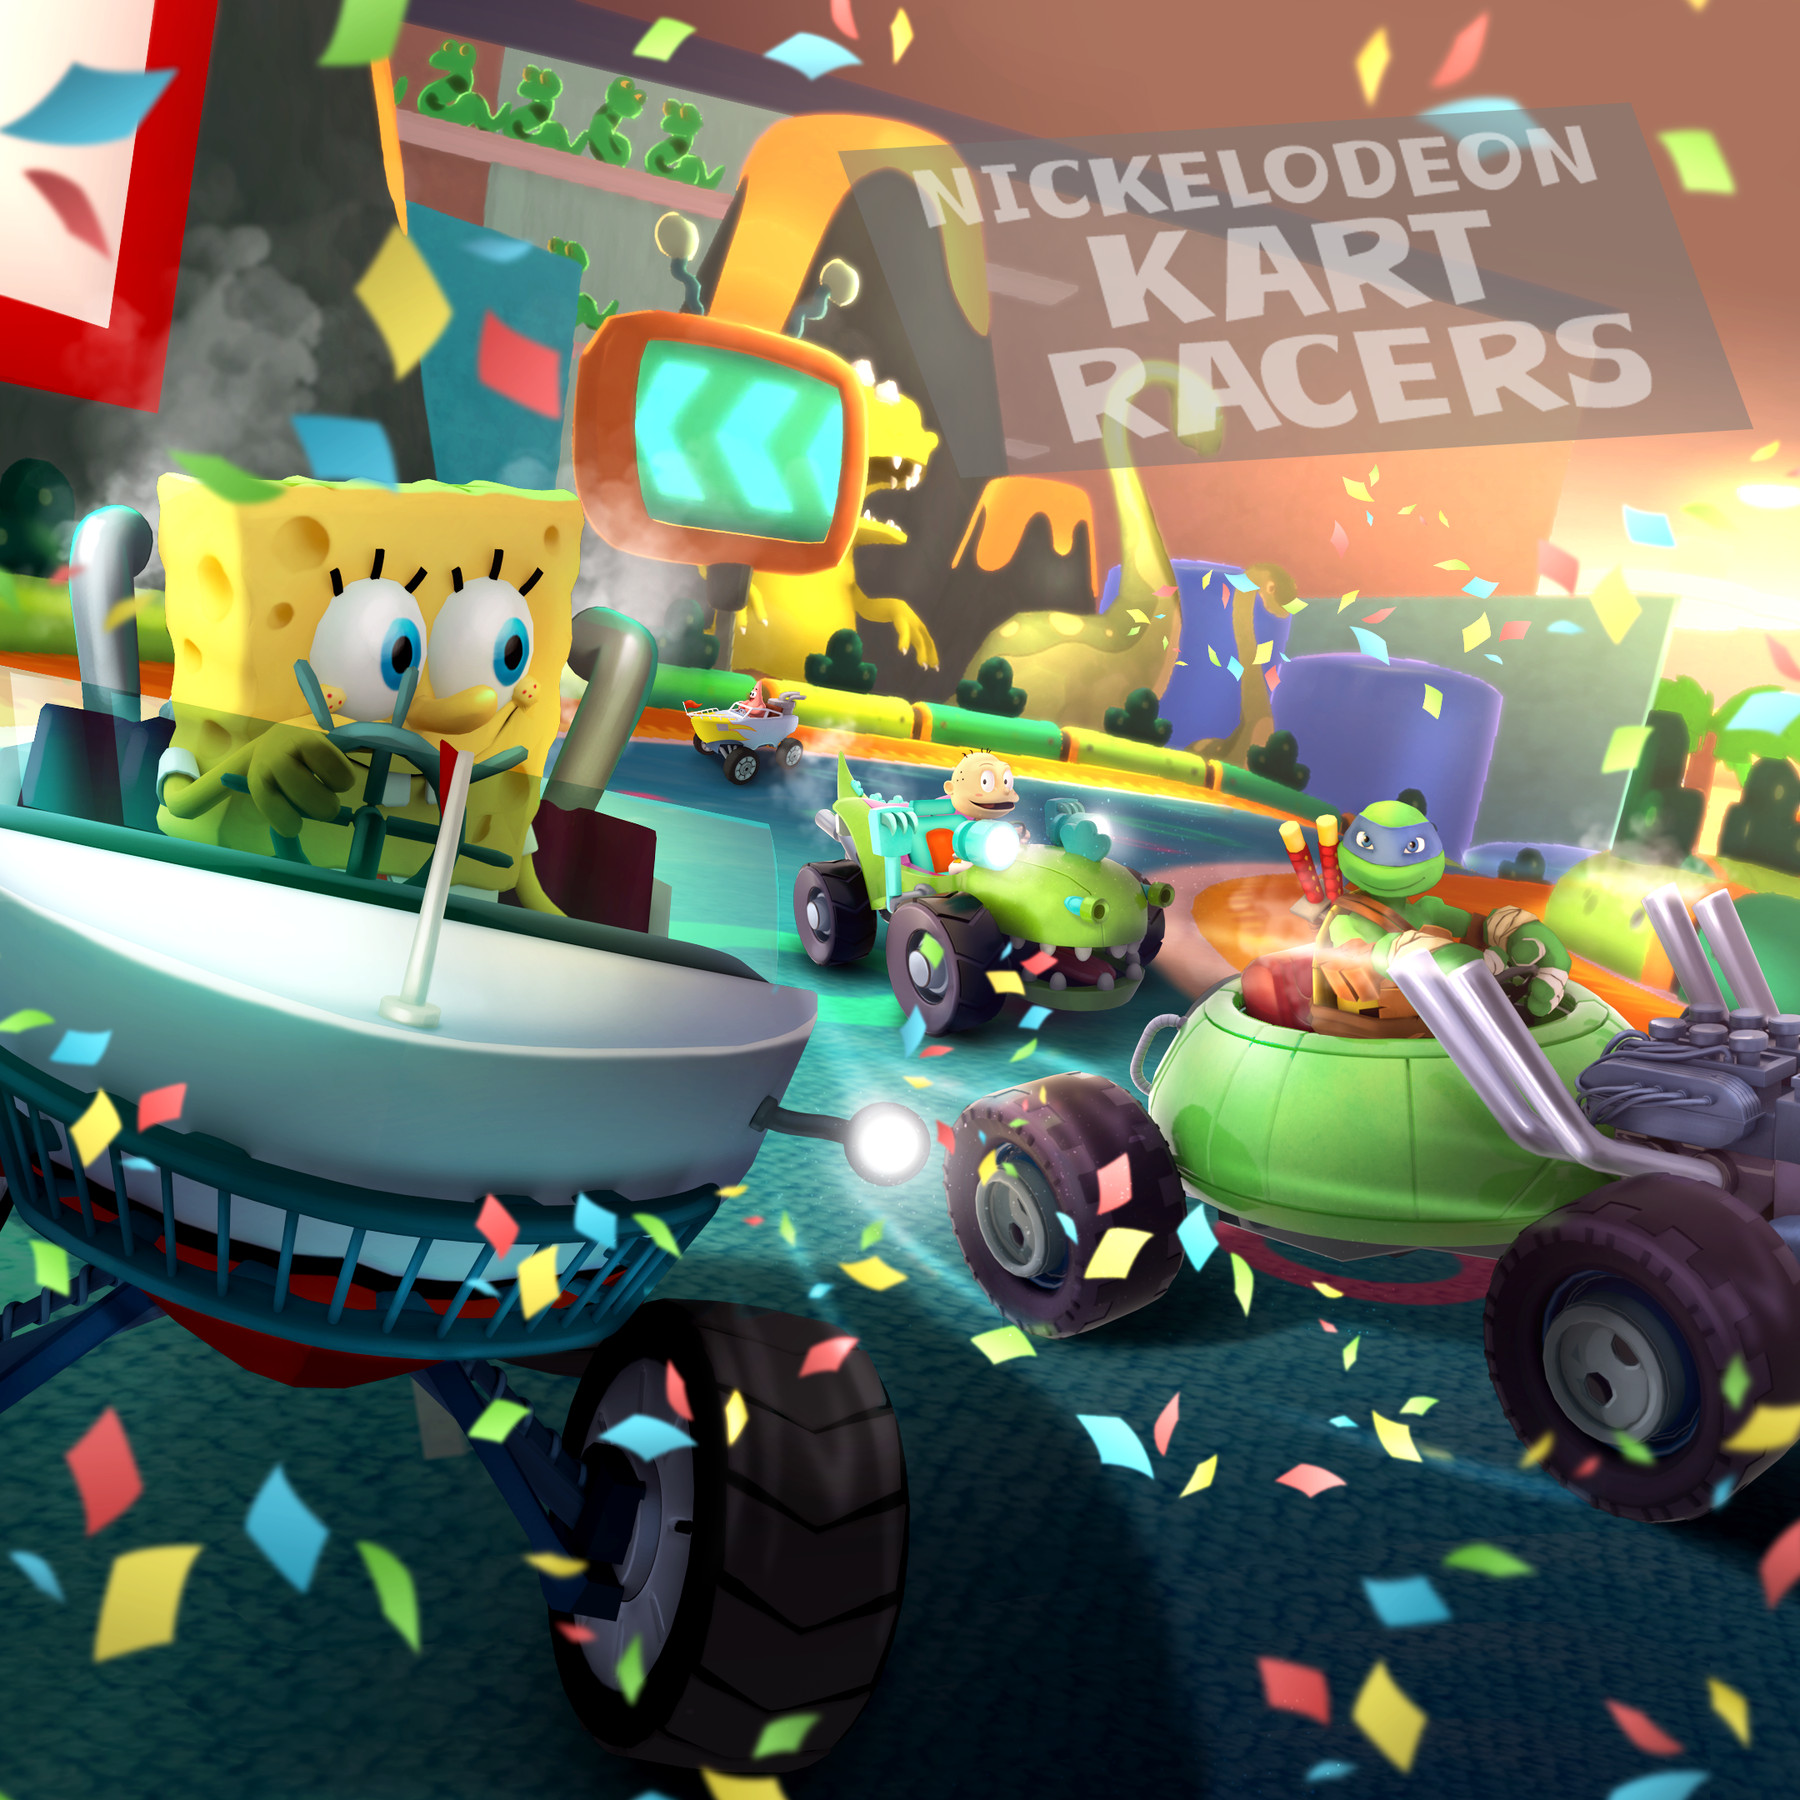 Nickelodeon Kart Racers reunites classic cartoons on